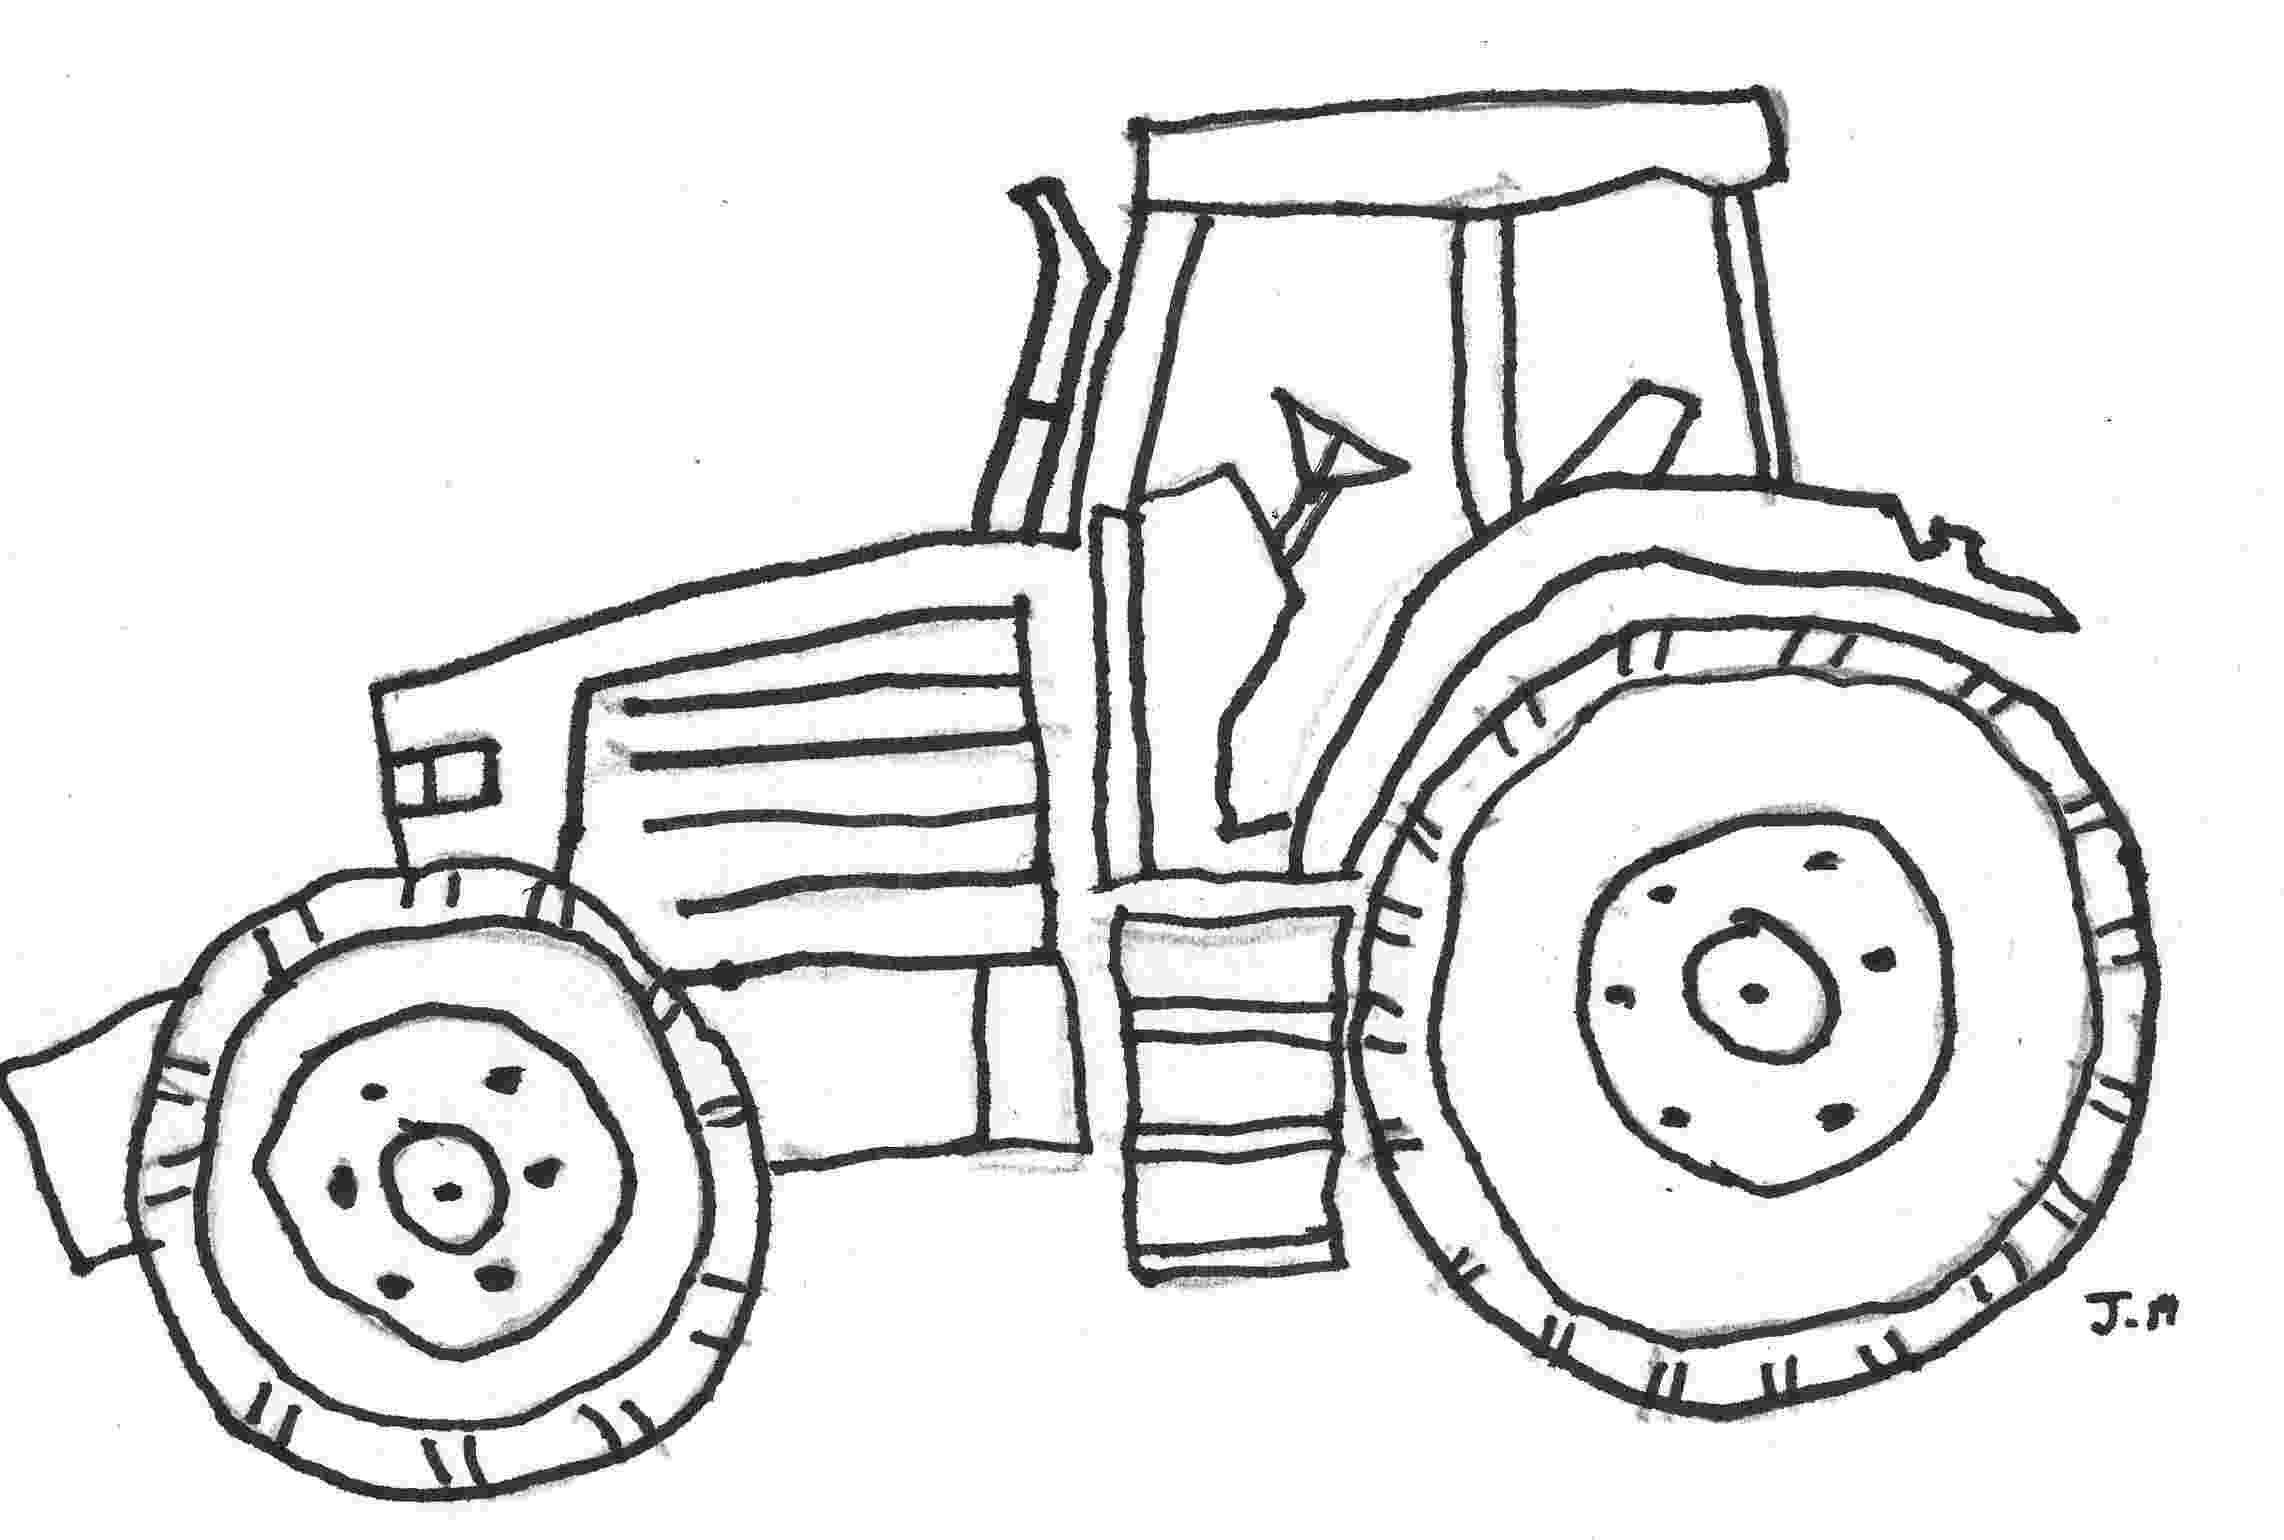 tractor coloring sheet art of the tractor coloring book octane press coloring tractor sheet